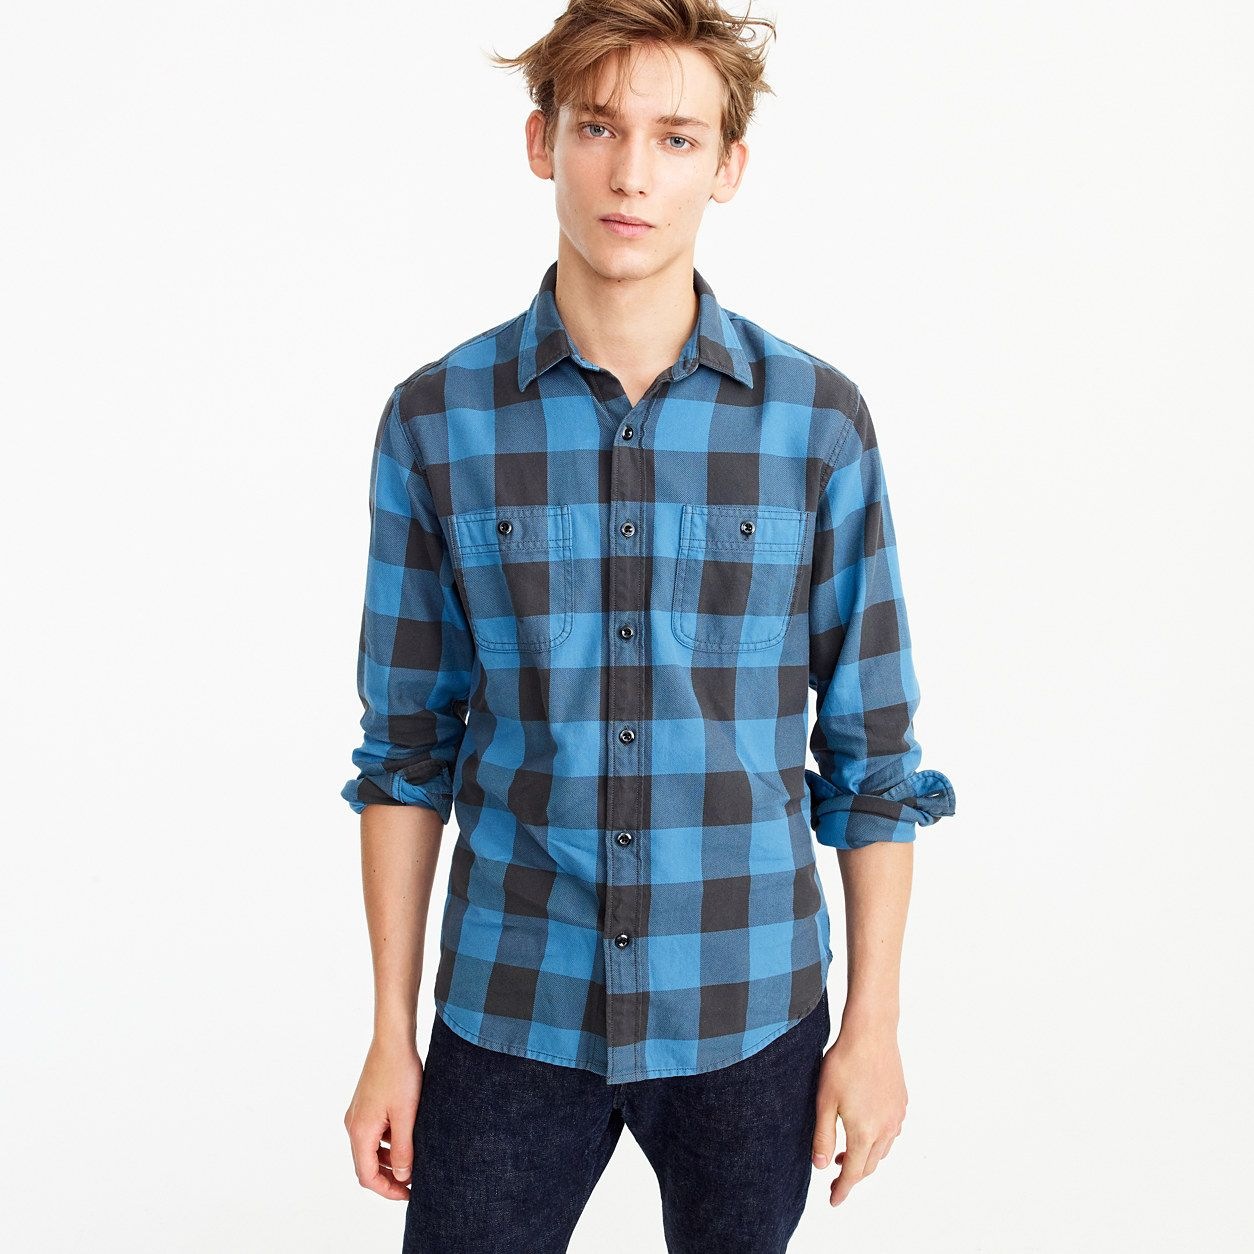 Flannel shirt plus size  Midweight flannel shirt in buffalo check  Flannel shirts Flannels